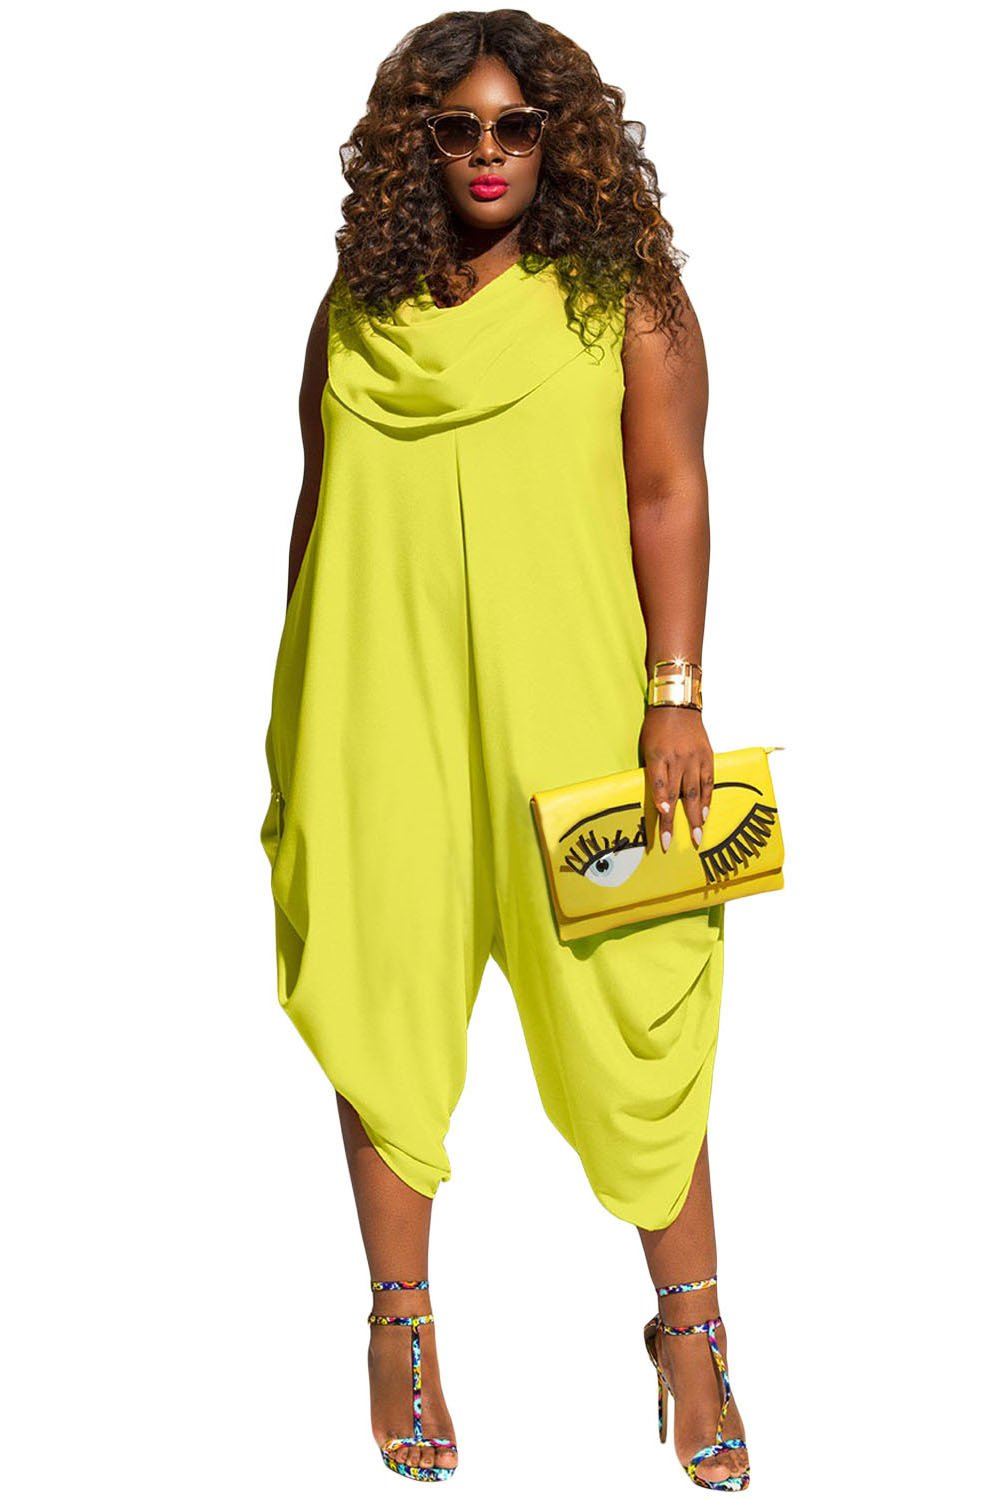 New Ladies Plus Size Yellow Loose Fitted Harem Romper Jumpsuit Playsuit Bodysuit Romper Club Wear Clothing Size XXXL UK 16 EU 44